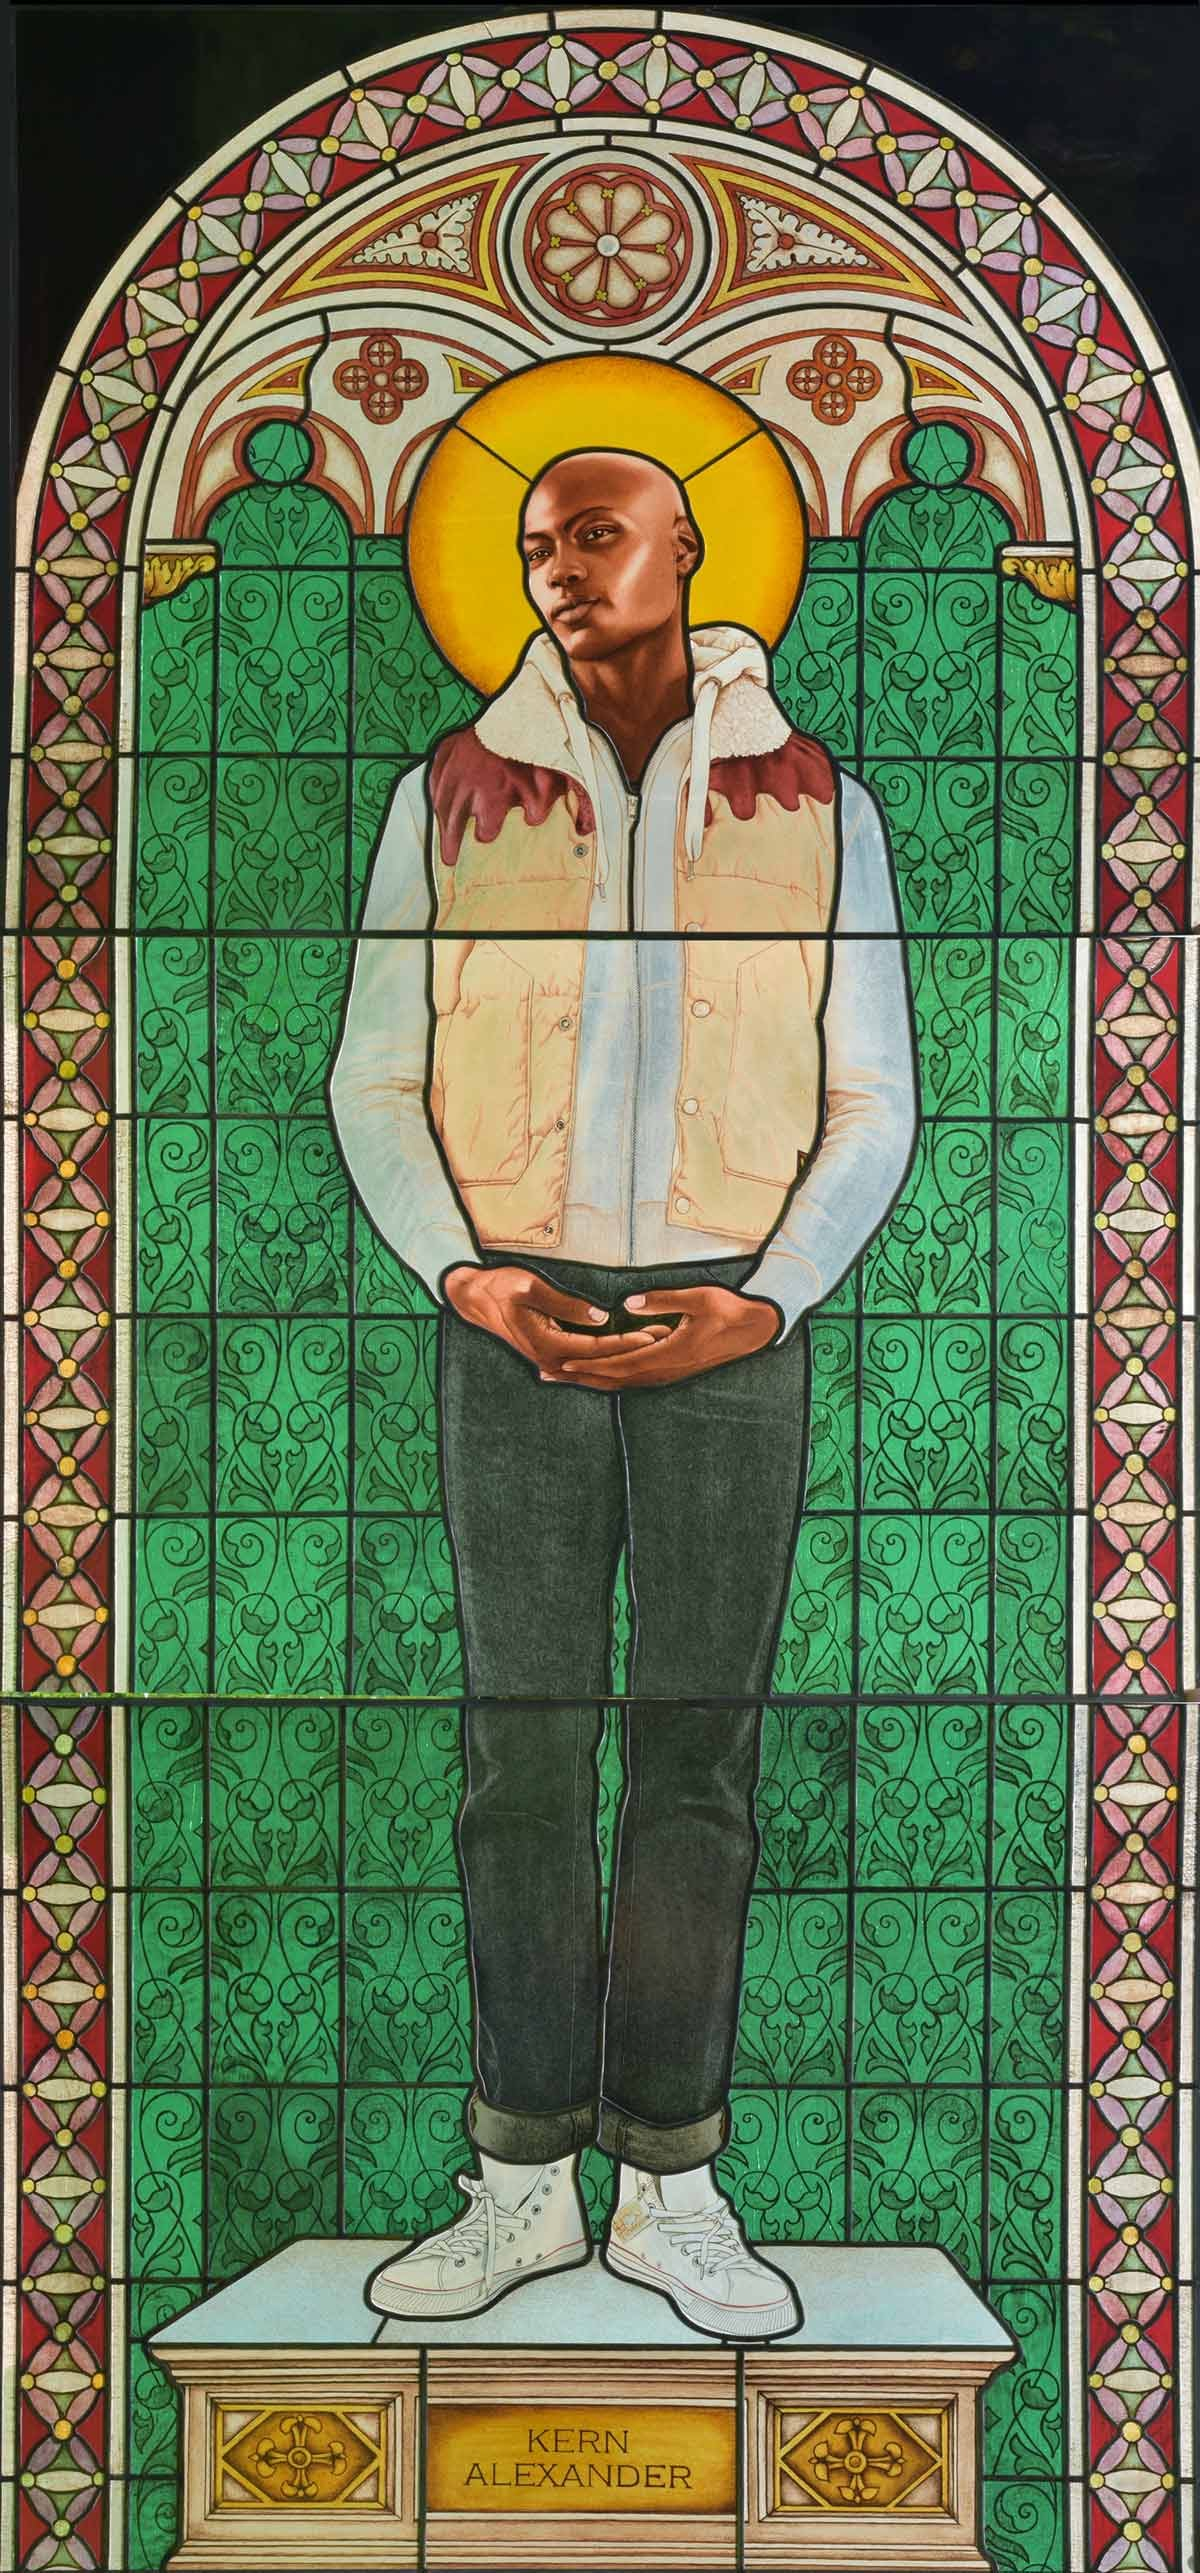 Kehinde Wiley, Saint Amelie, 2014, Glas in lood 251,2 x 115,4 cm, Courtesy of Templon, Paris & Brussels - On view at Kunsthal